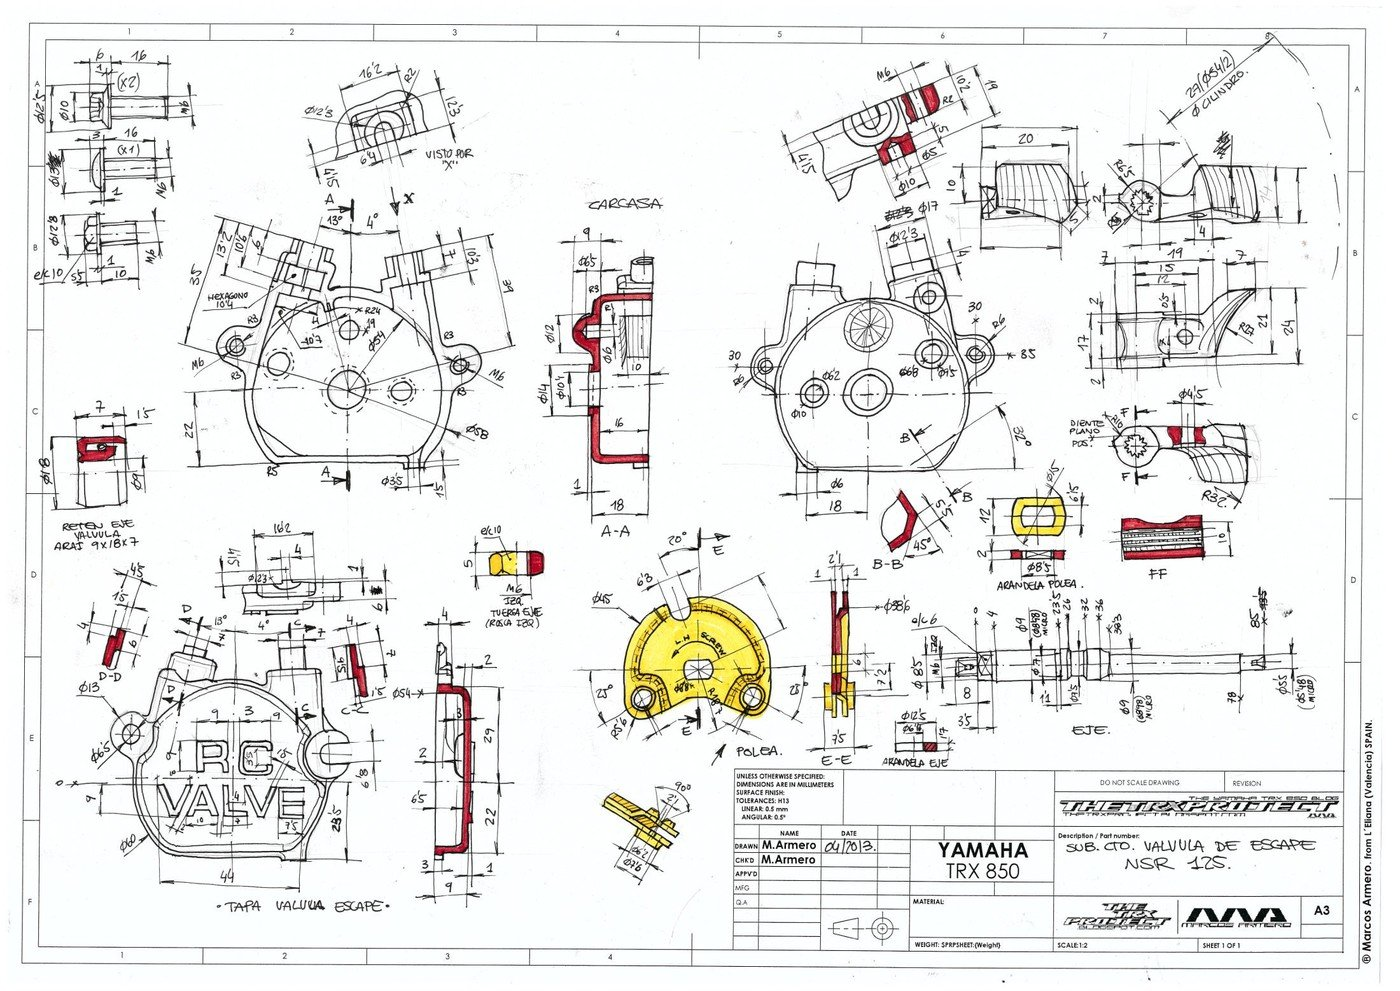 TRX 850 and NSR 125 Sketches. by Marcos Armero at Coroflot.com